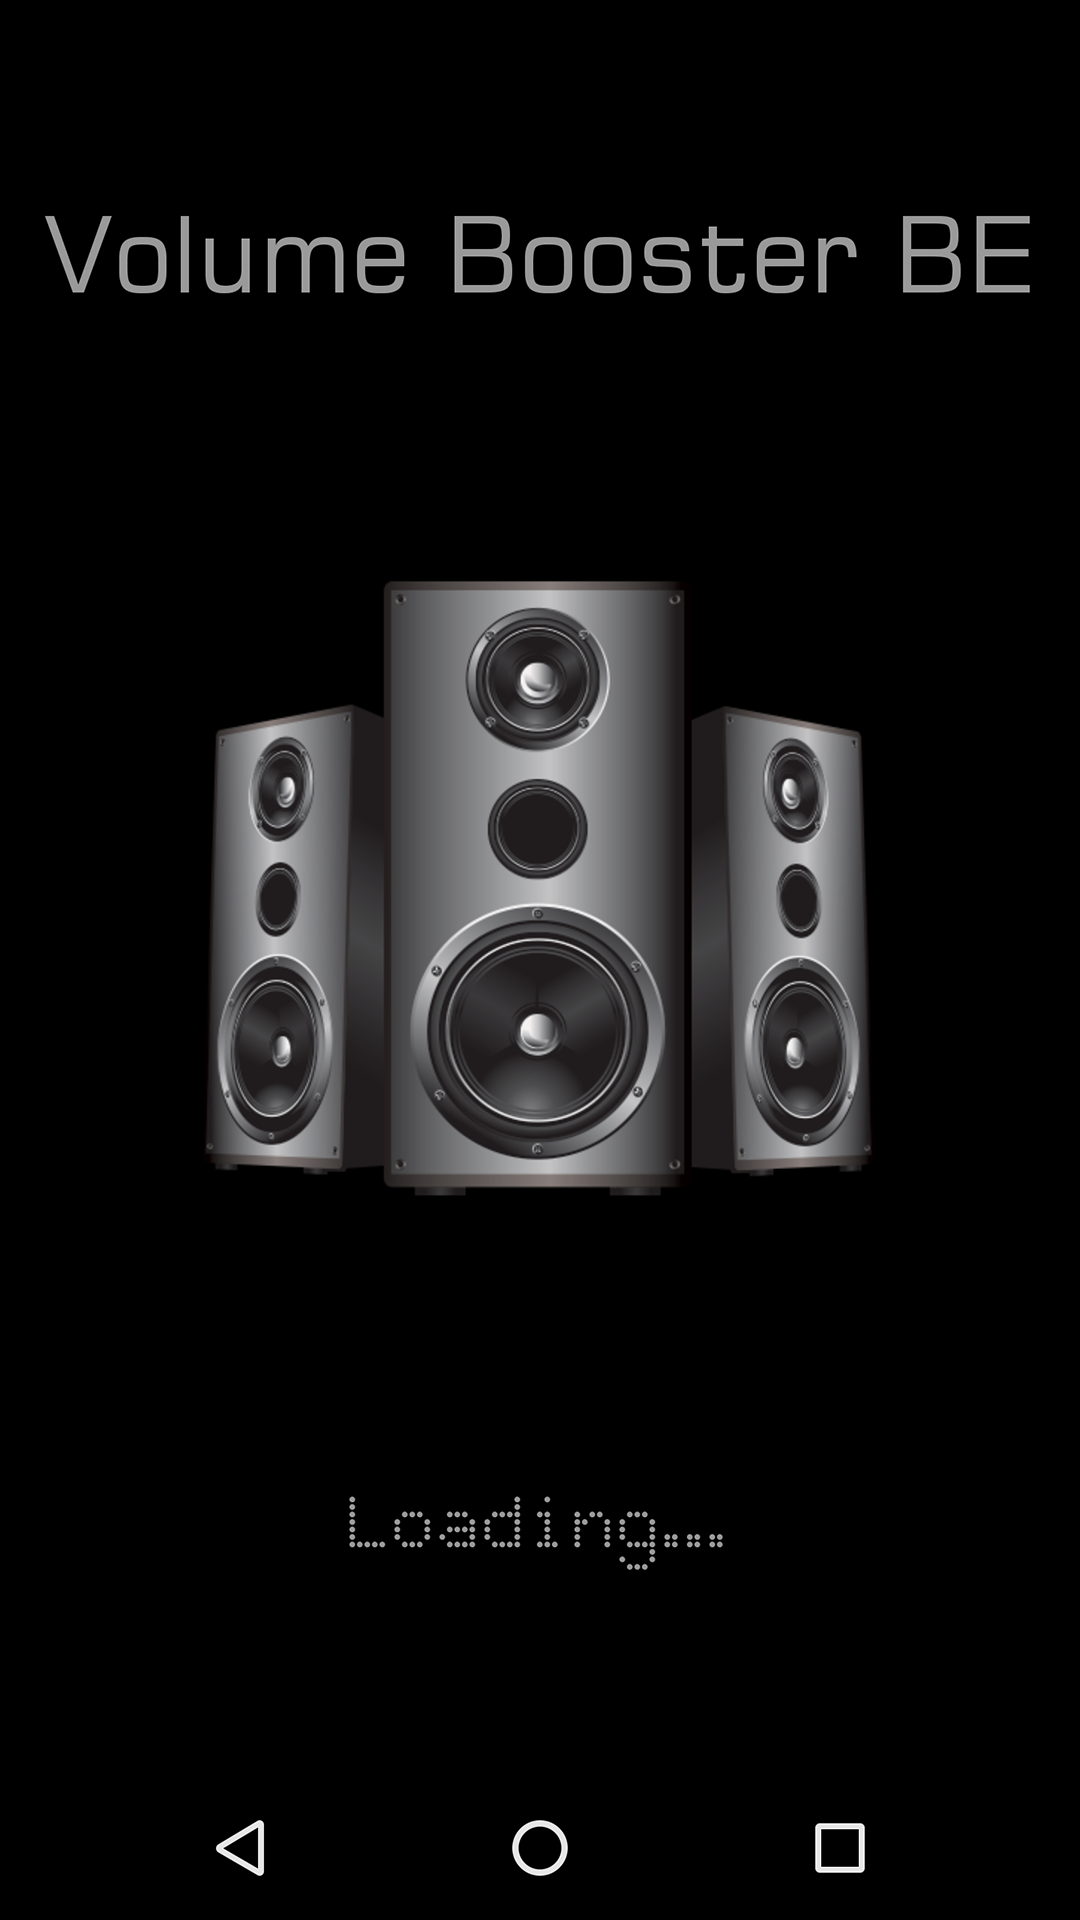 Zoom IMG-2 volume booster black edition